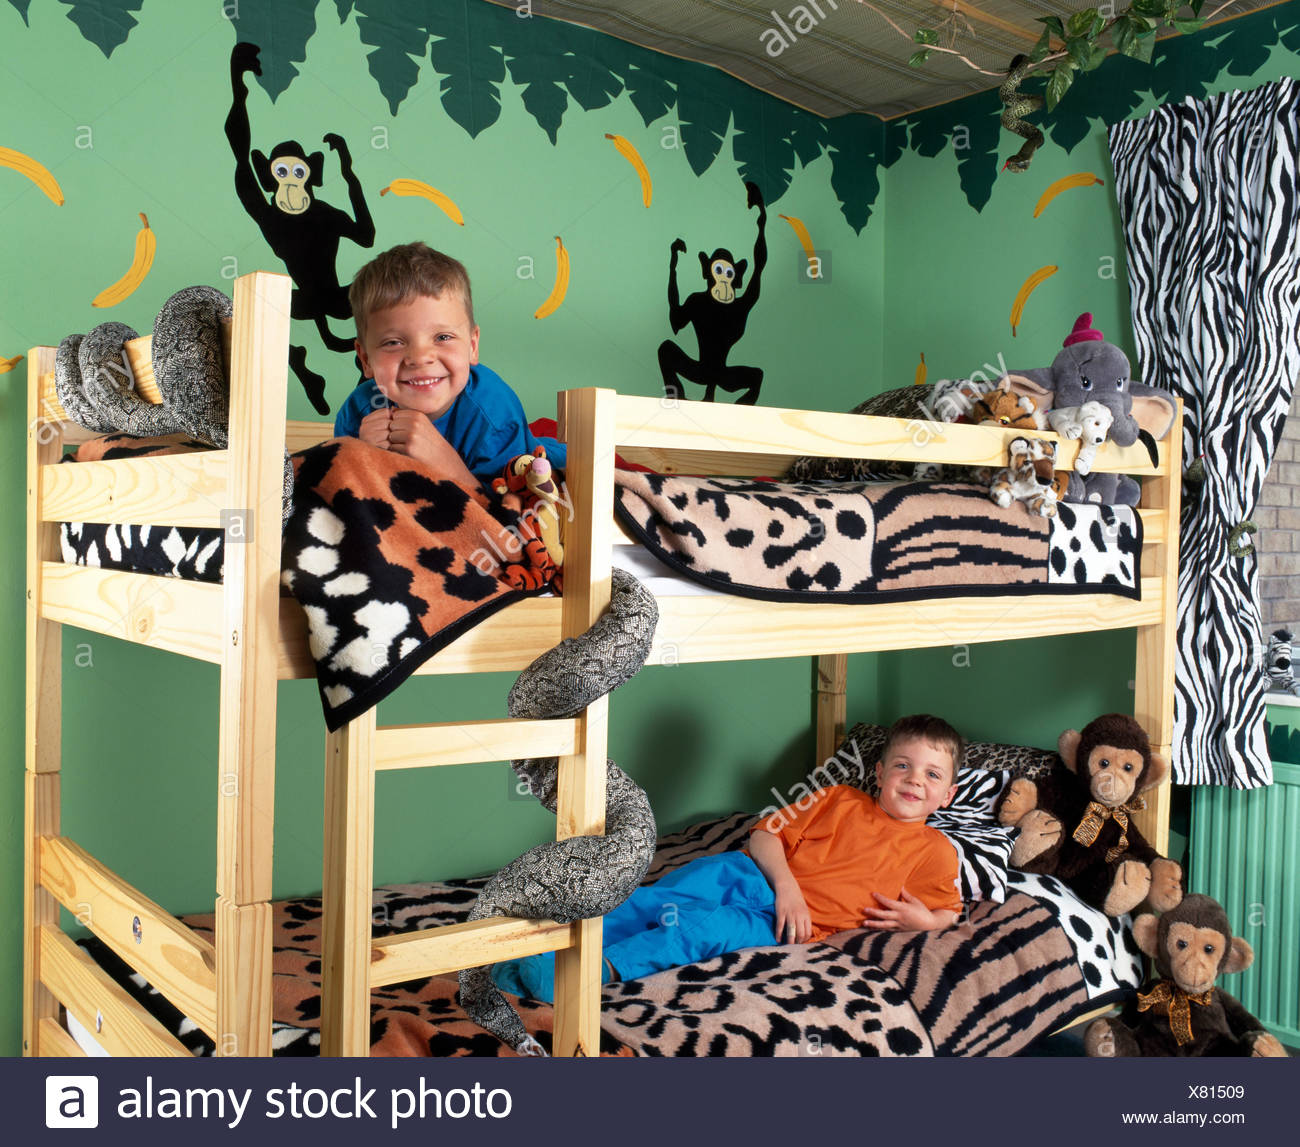 two small boys on bunk beds in nineties animal themed bedroom for